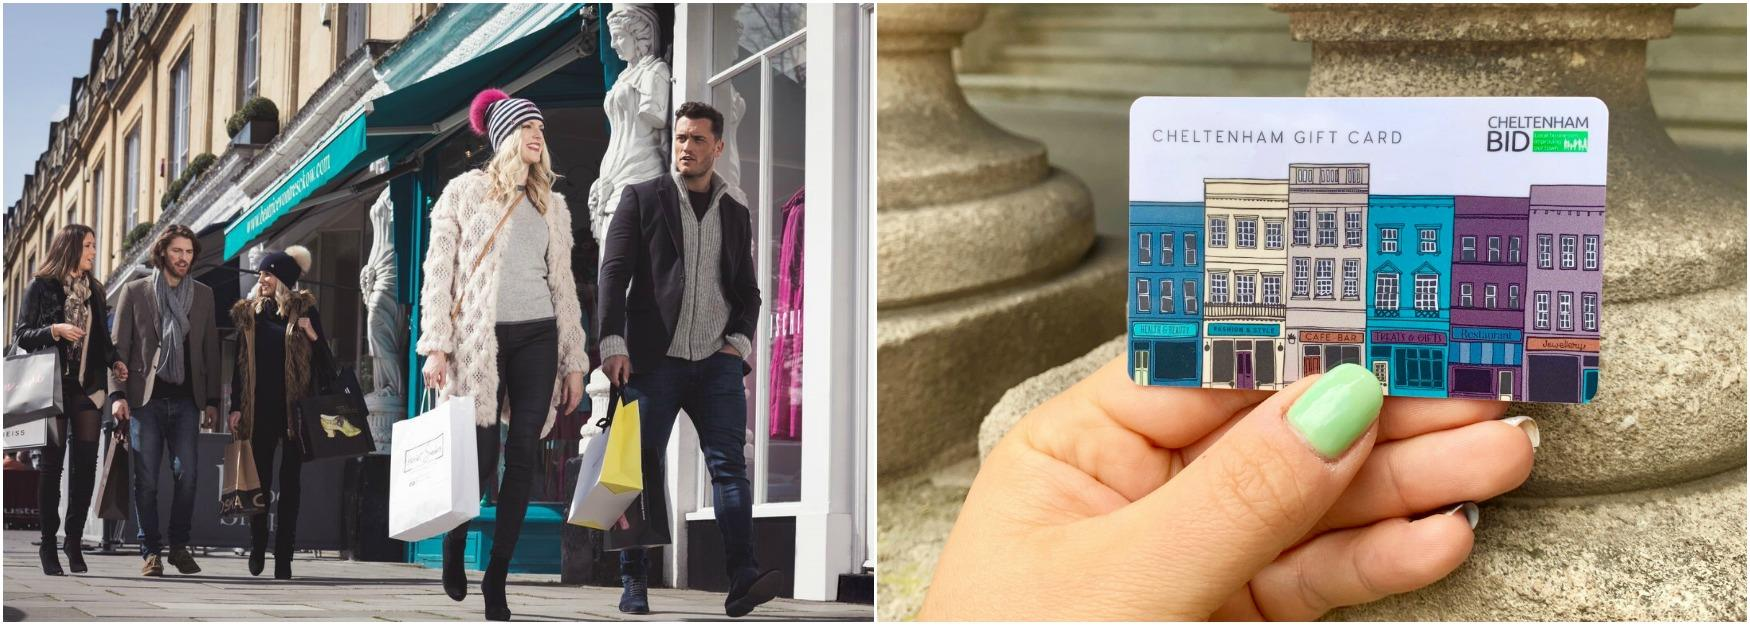 People shopping in Cheltenham alongside a photograph of the Cheltenham Gift Card